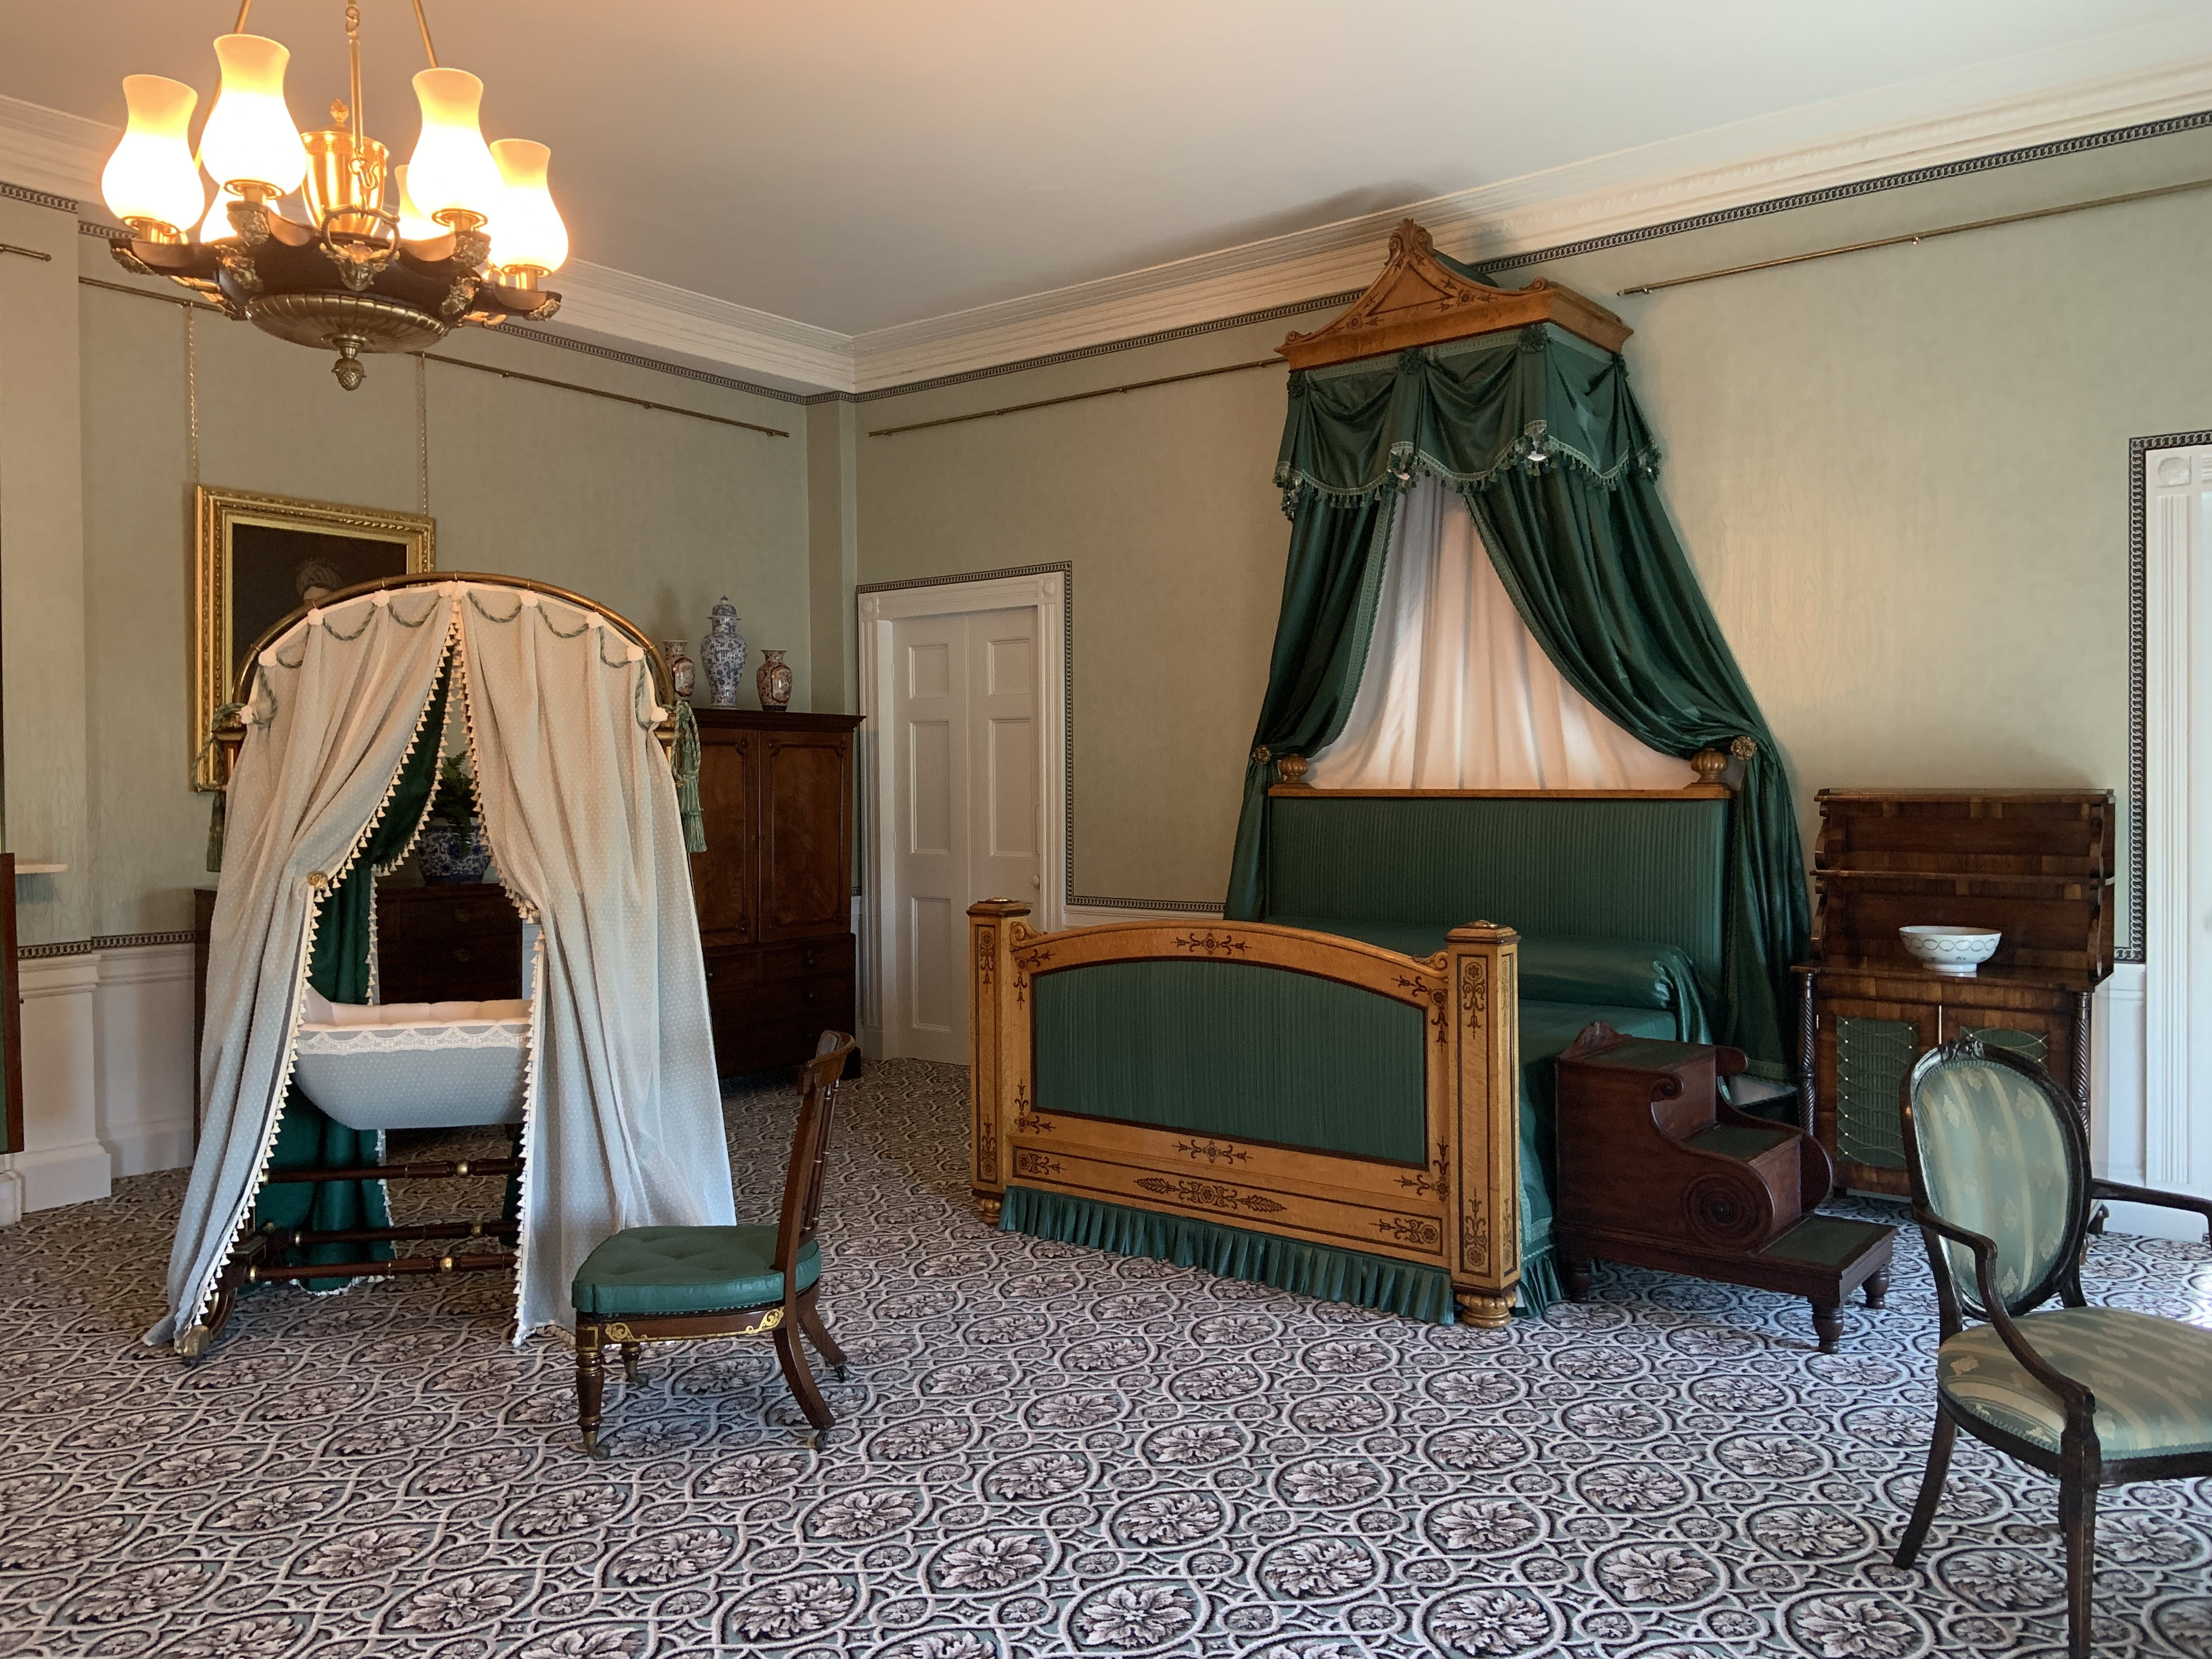 The room where Queen Victoria was born in Kensington Palace